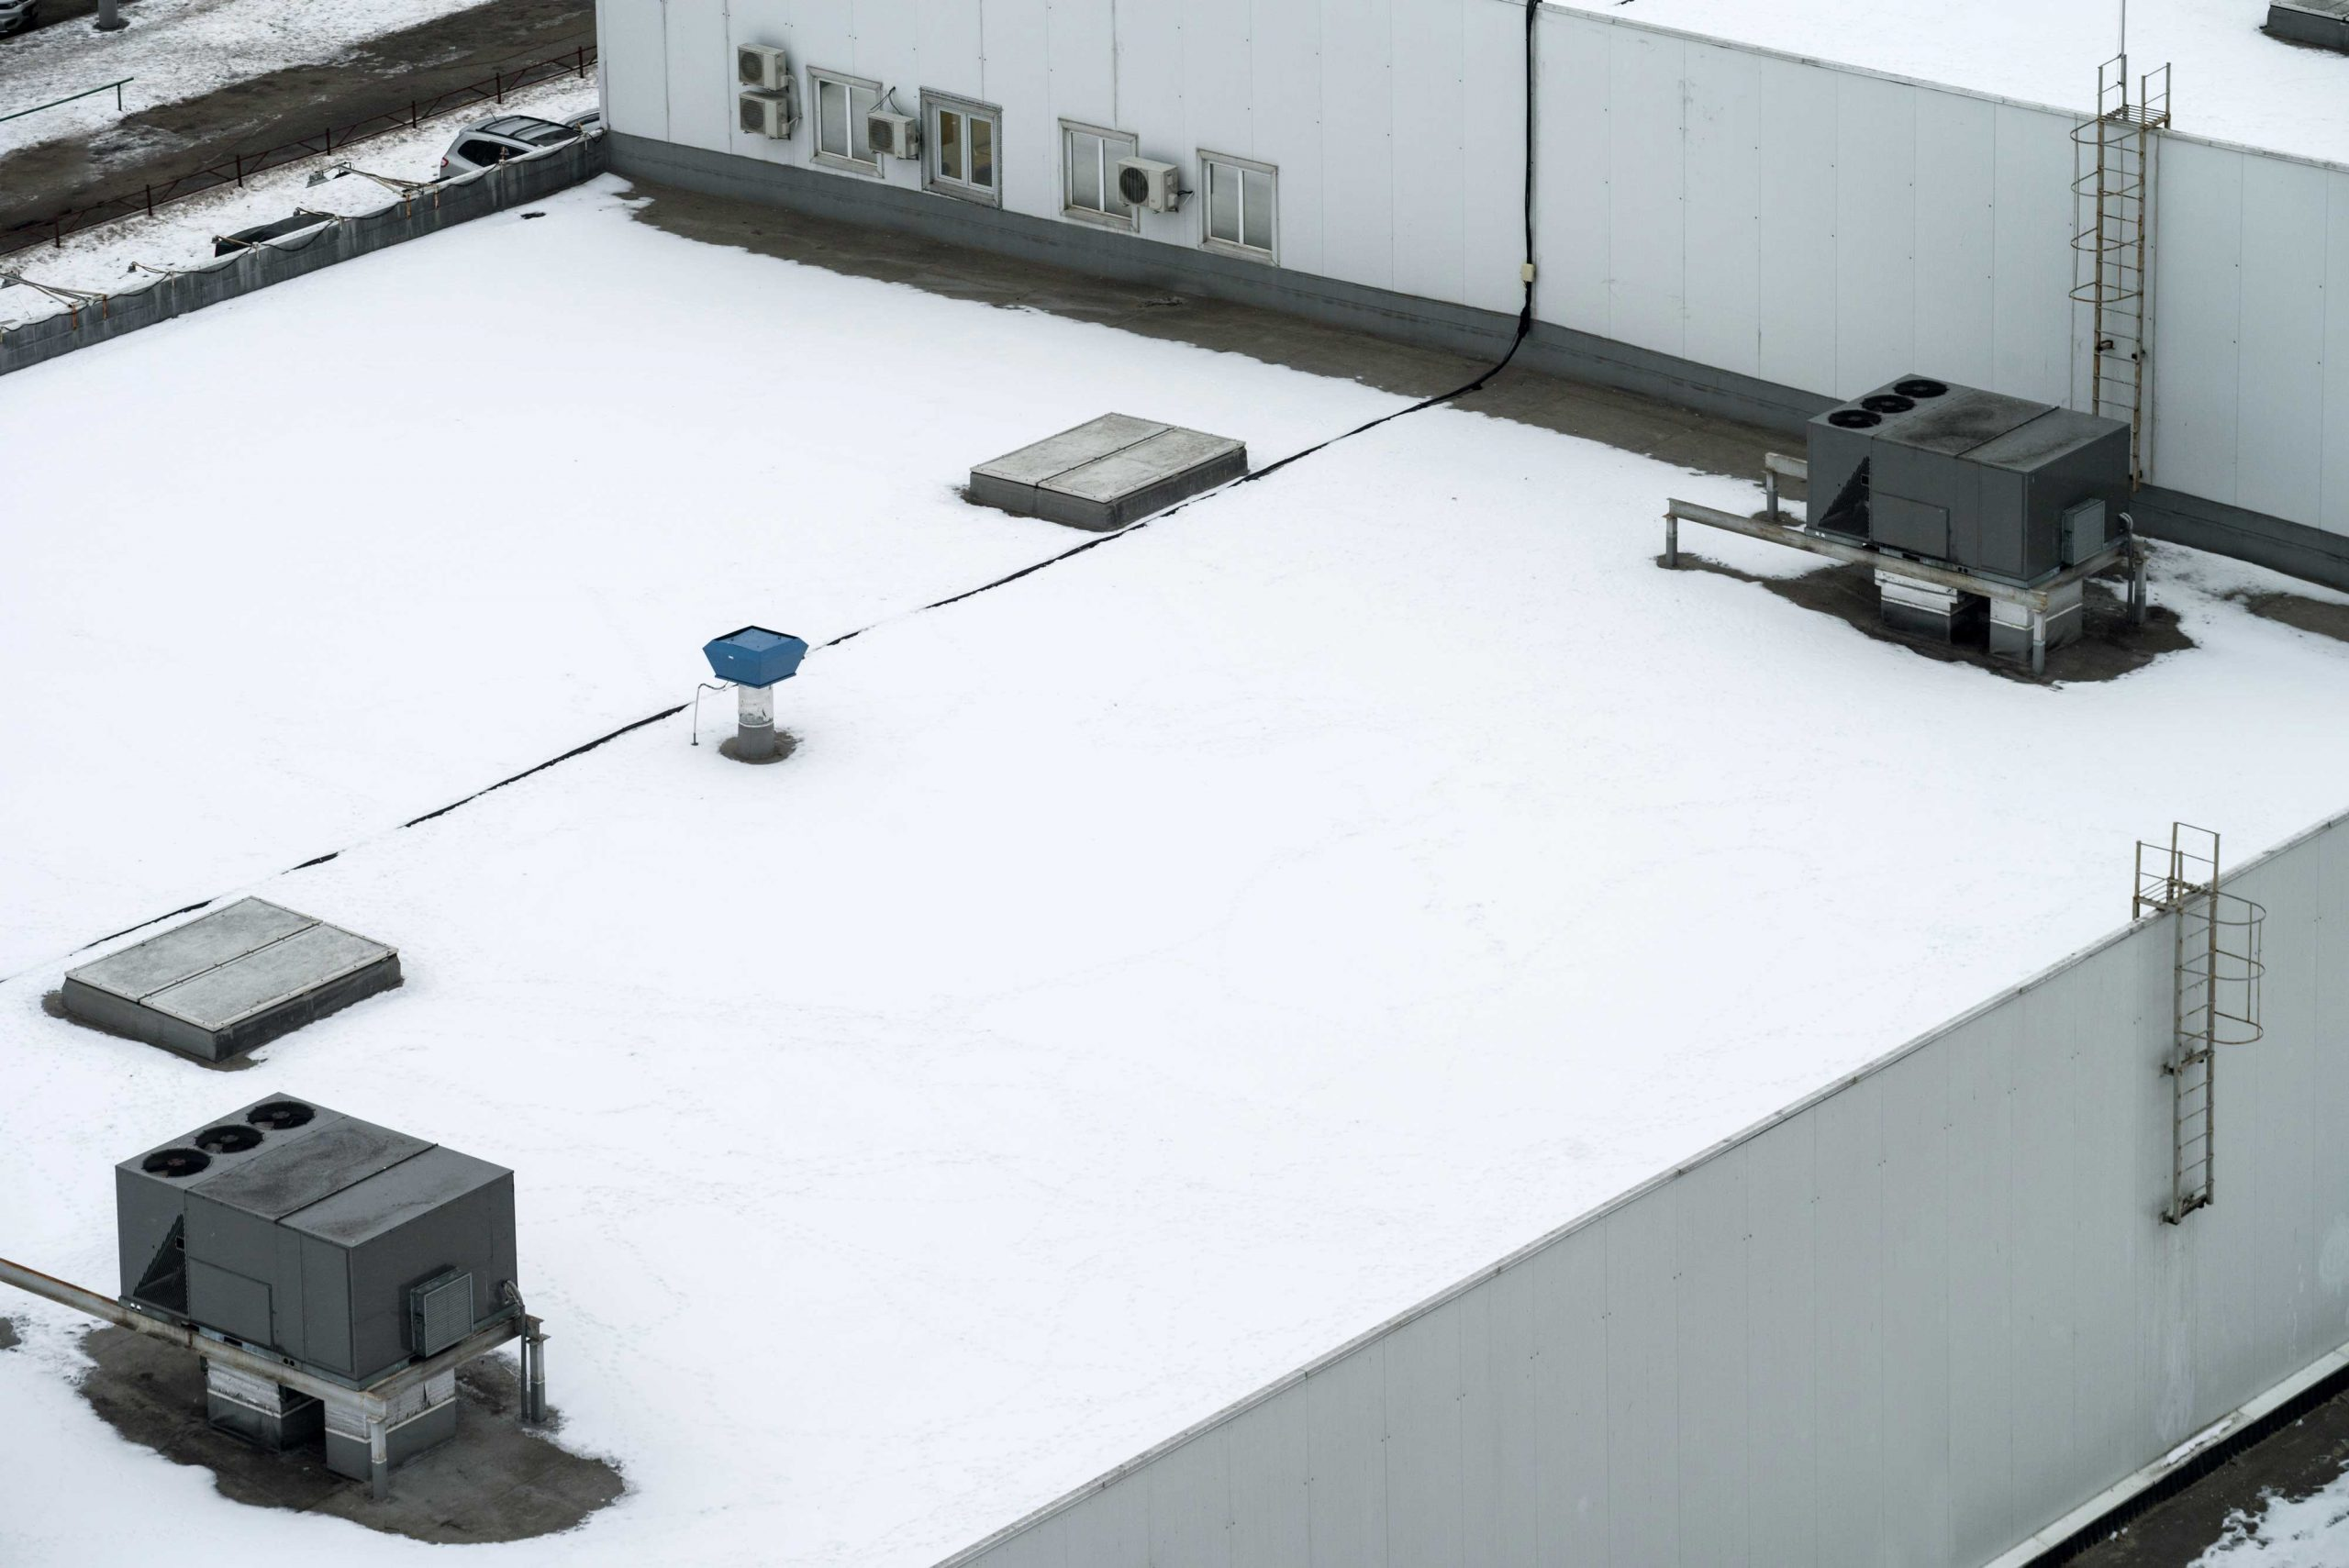 Commercial roof in the winter